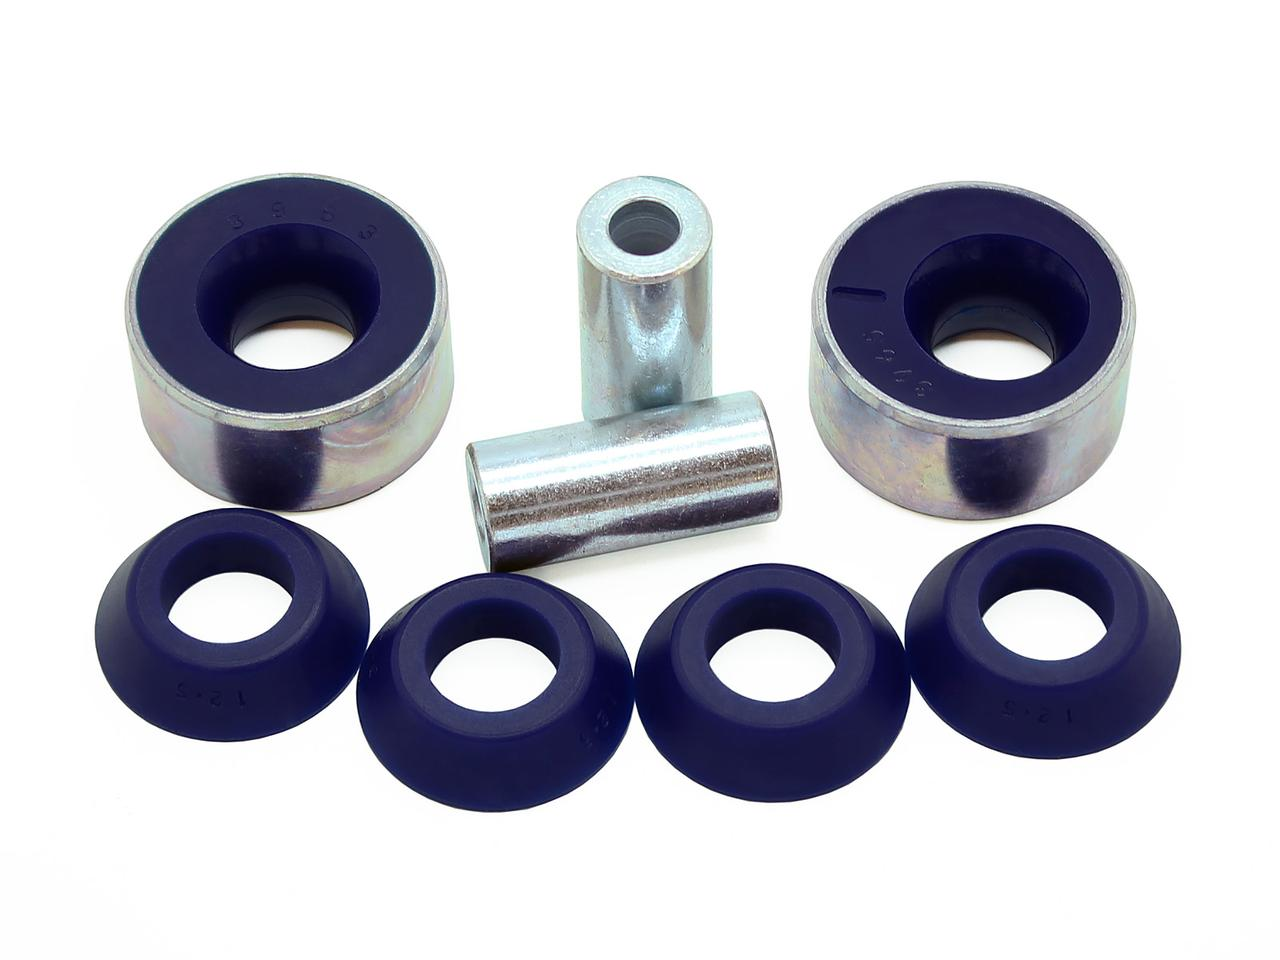 Renault Megane Mk3 SuperPro Control Arm Lower-Rear Bush Kit: Steering-Pull Correction Kit